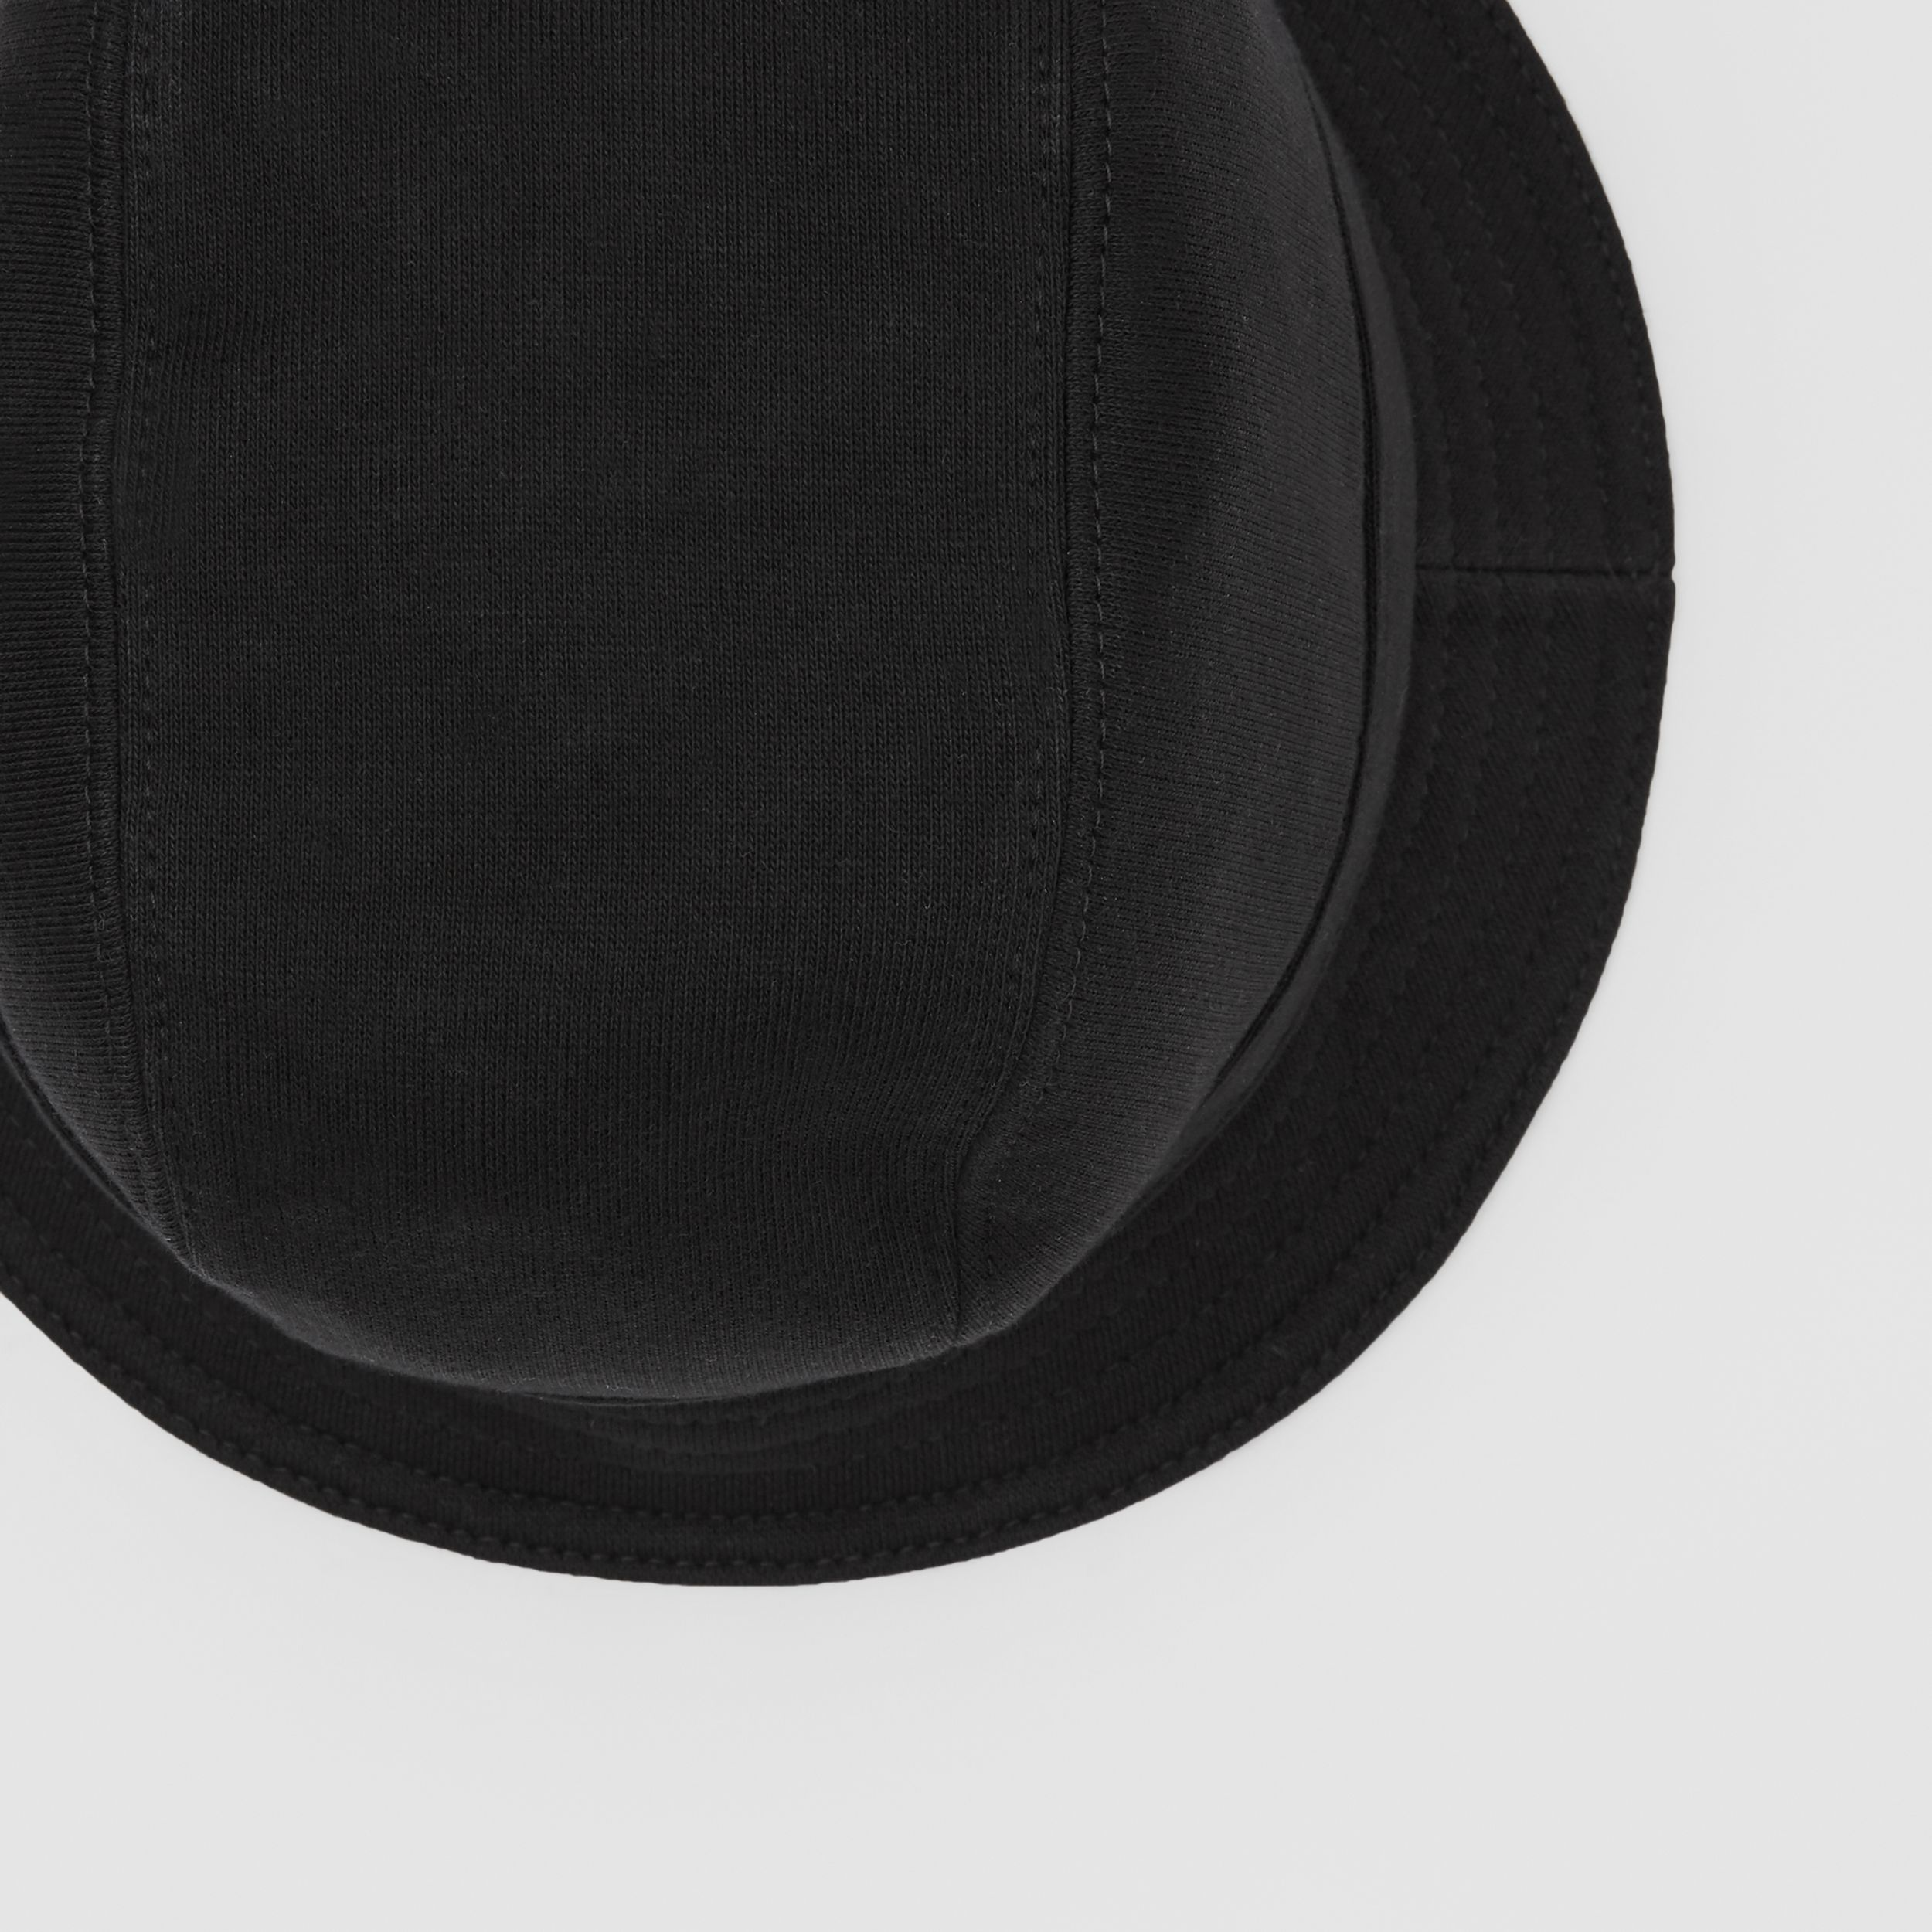 Logo Print Cotton Jersey Bucket Hat in Black | Burberry - 2